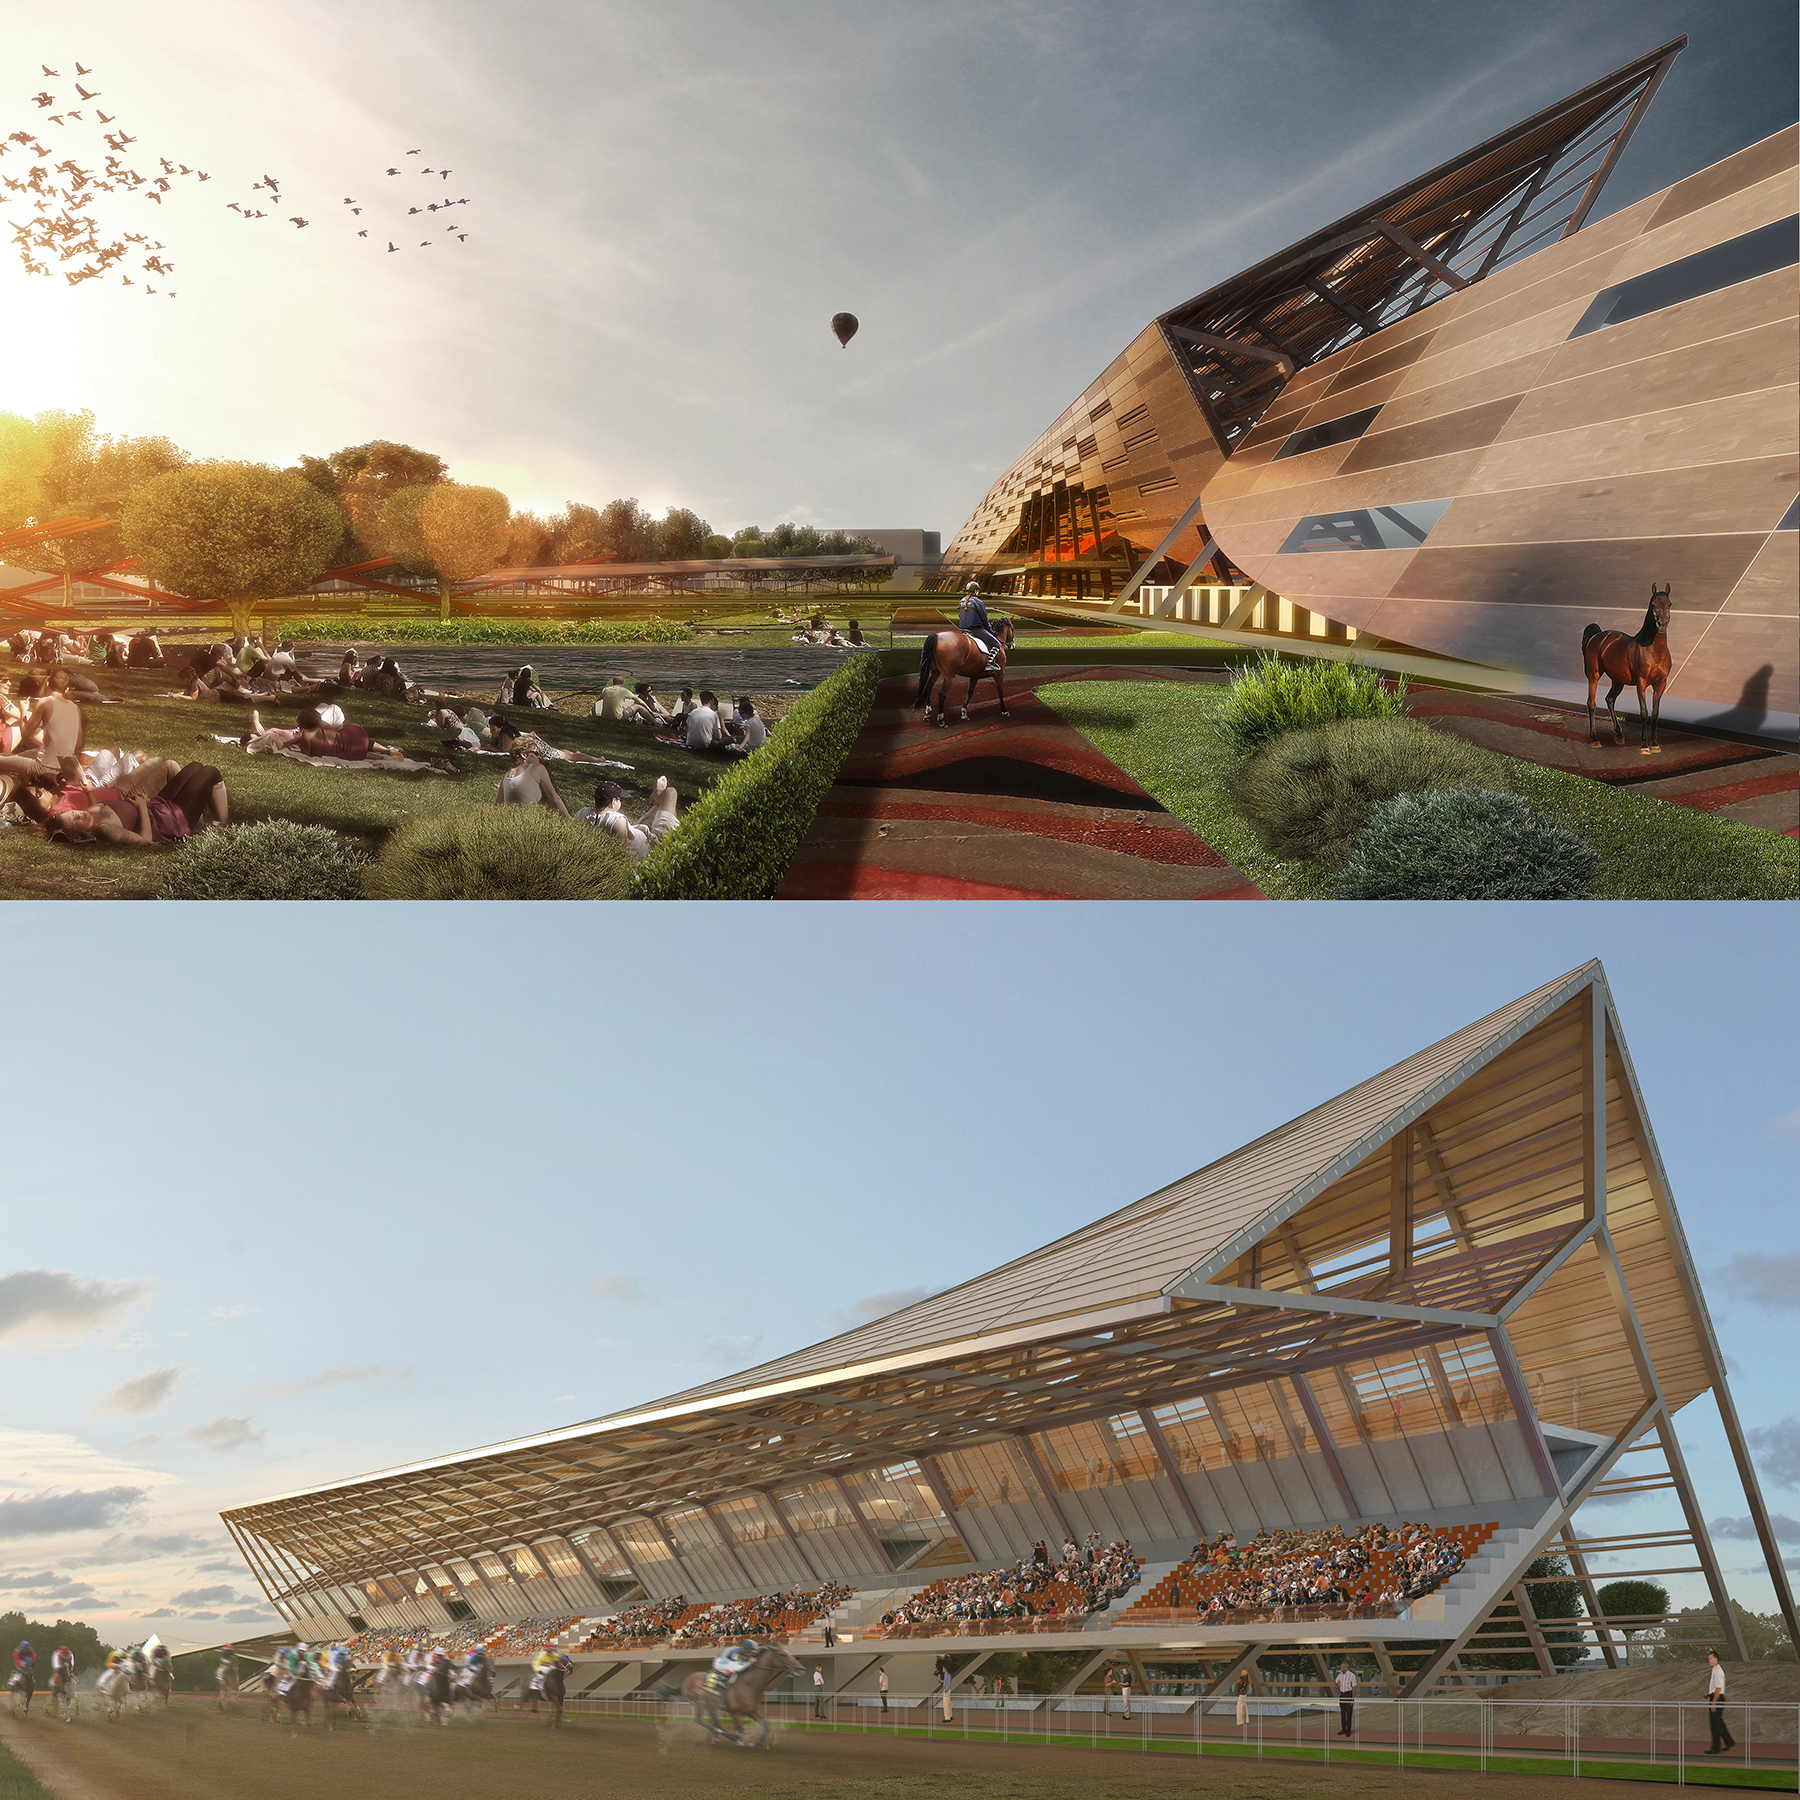 sorec, horse park, horse, grandstand, horse racing, morocco, green, design, aoa, avoidobvious, vicky chan, architect, architecture, sustainable, green, natural, contextual, innovative